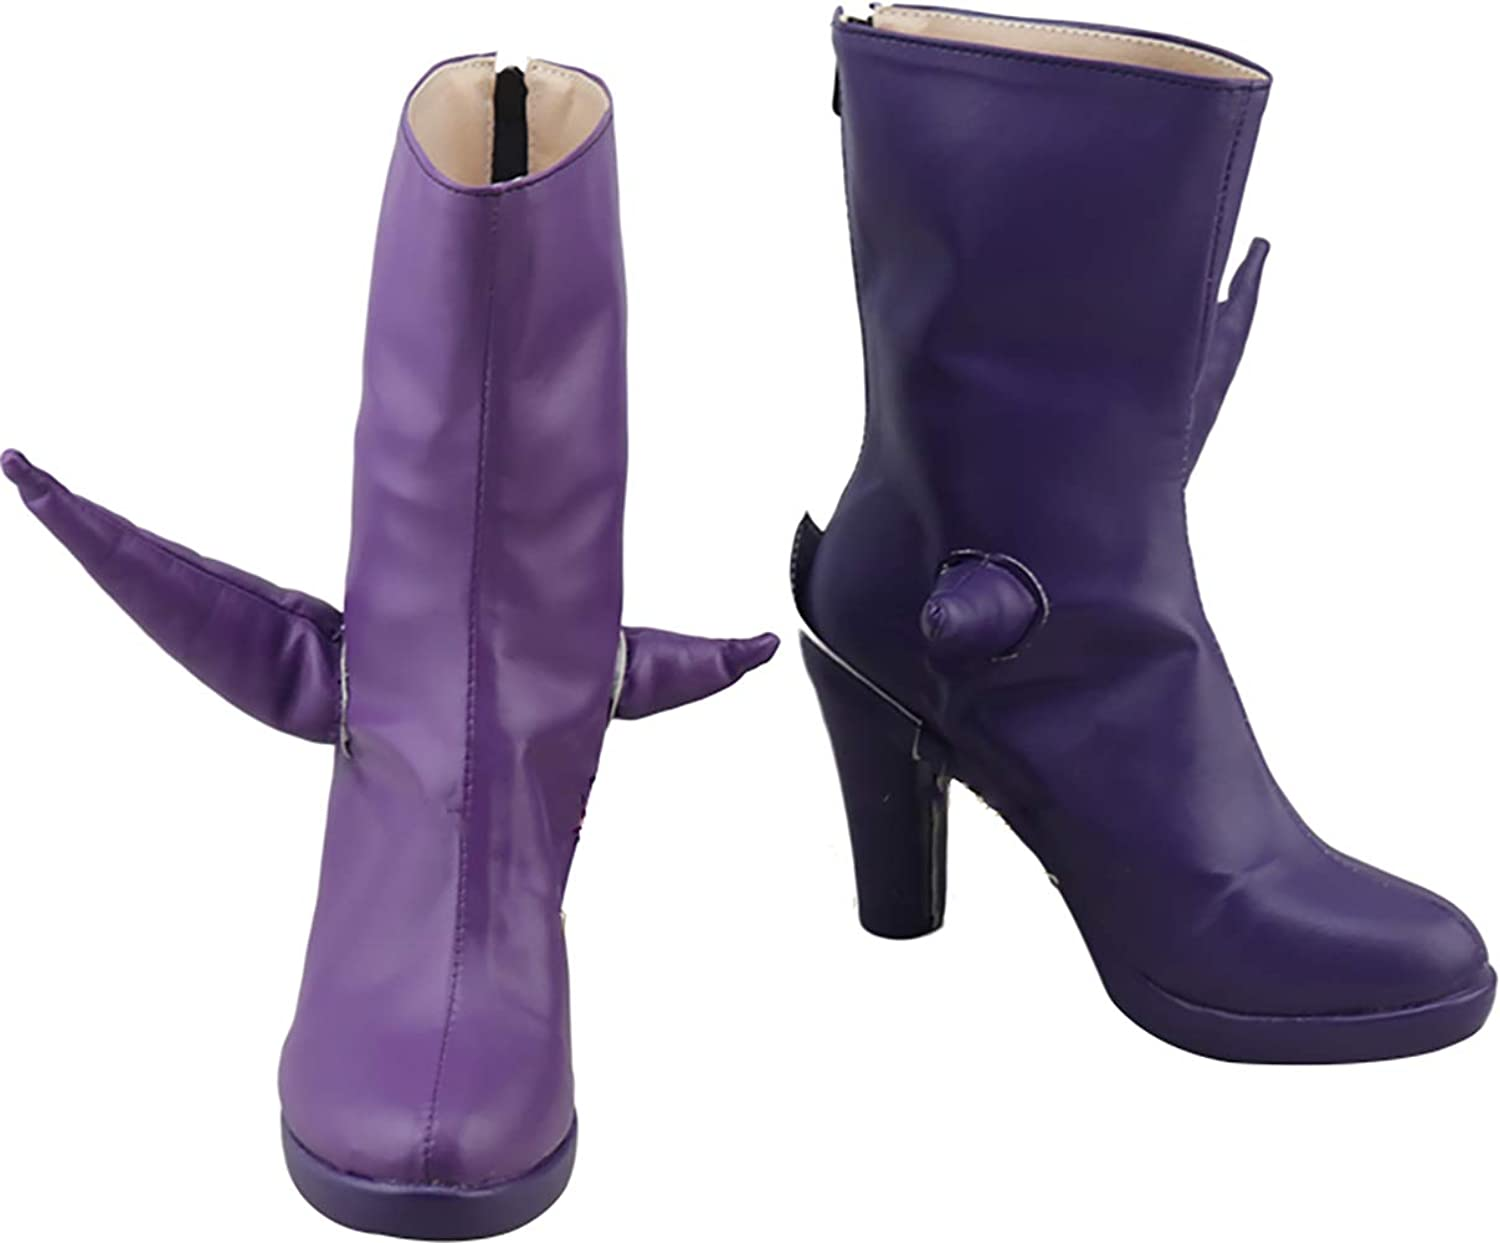 GSFDHDJS Cosplay Boots shoes for League of Legends Evelynn